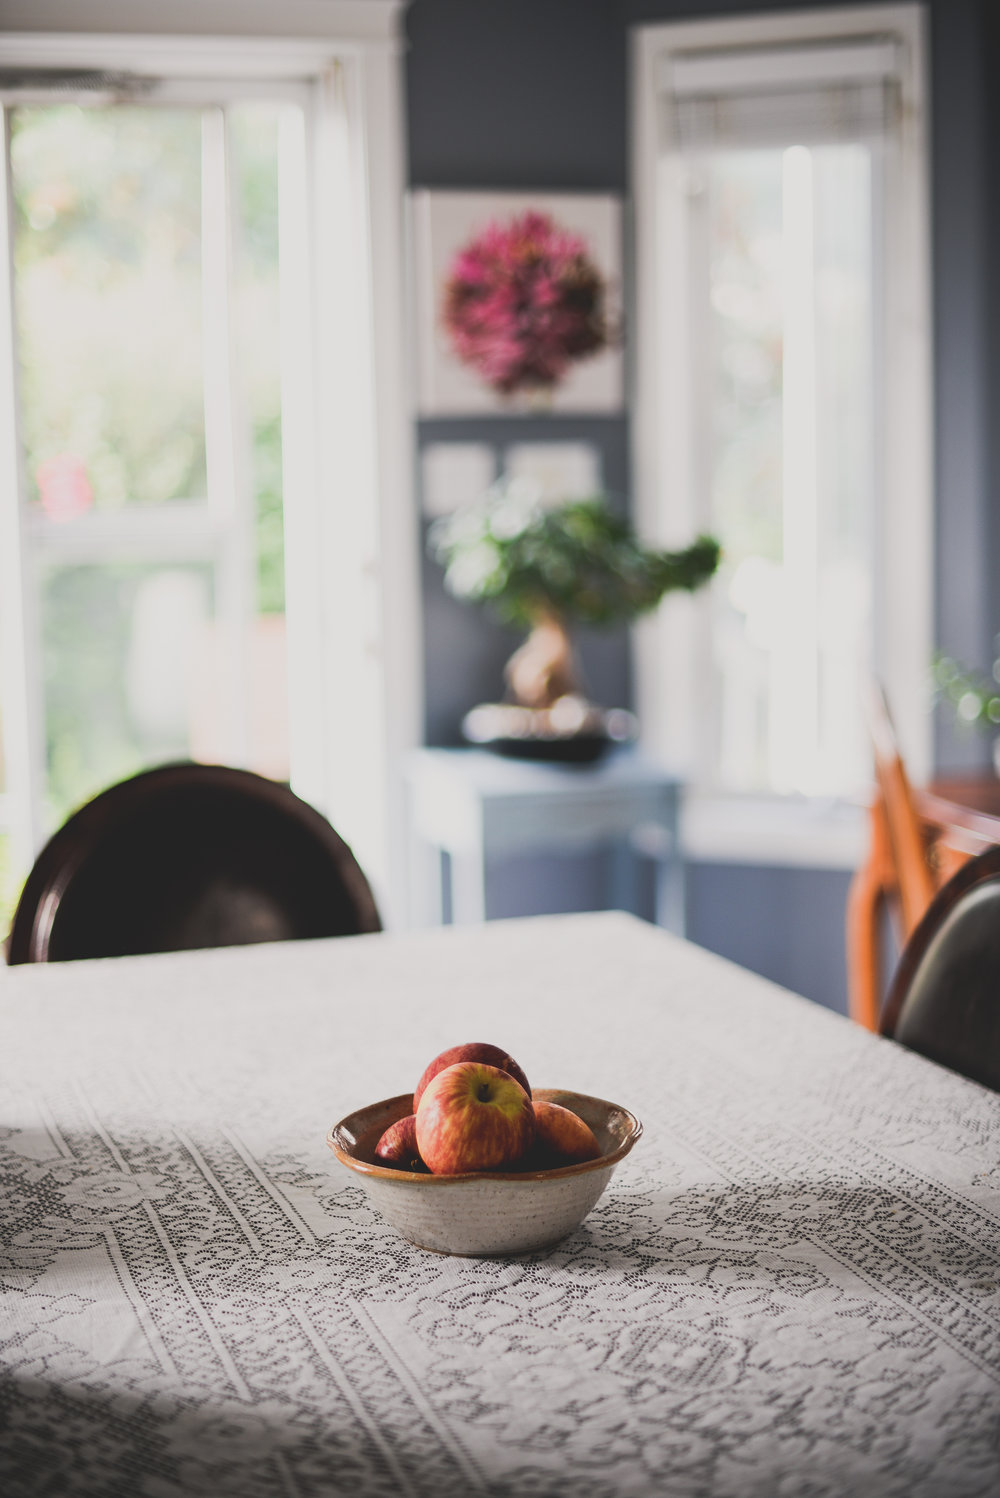 apples on a table